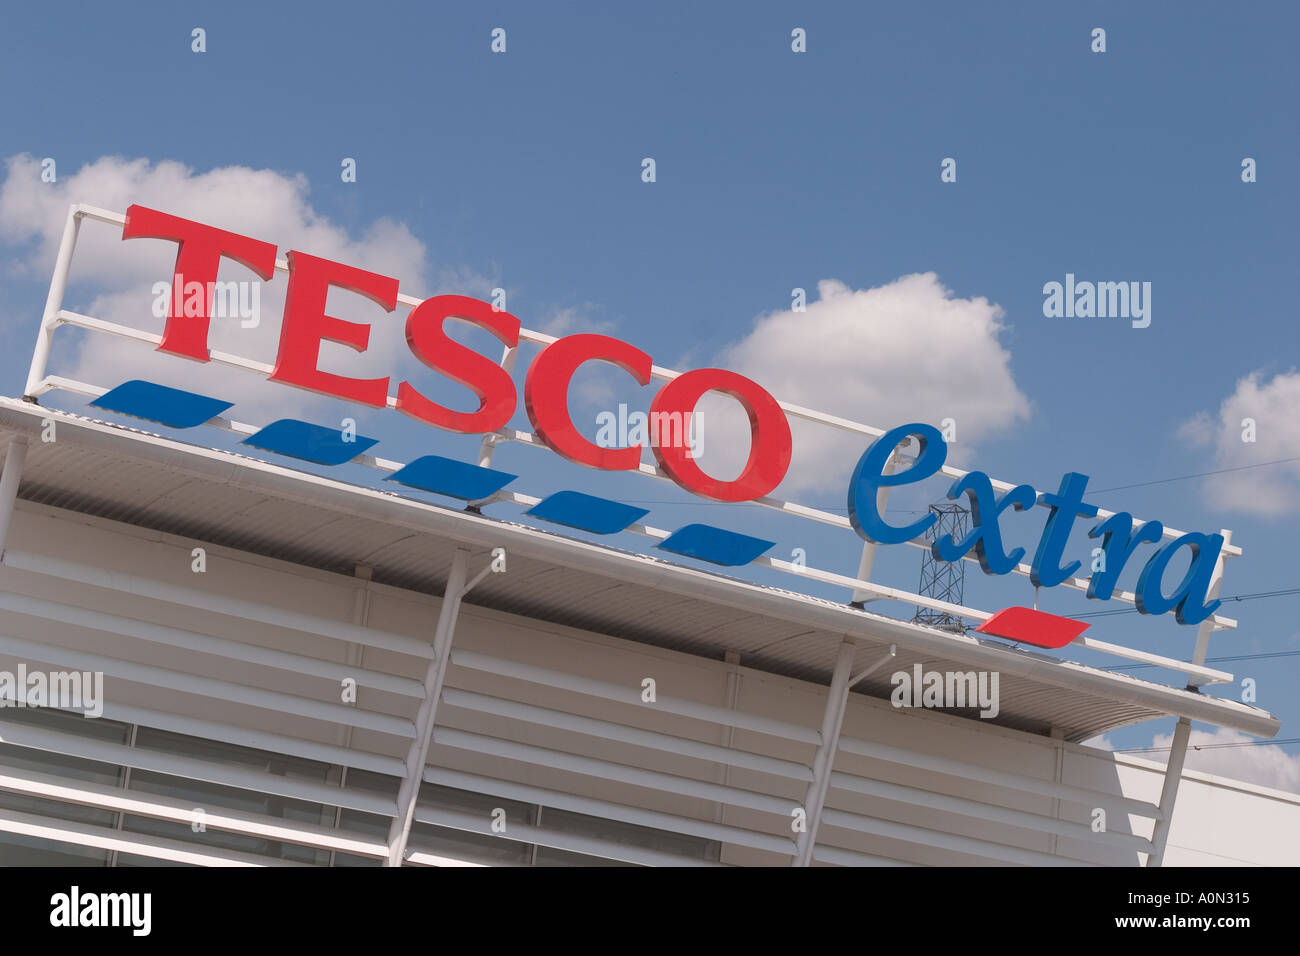 Tesco Extra at Gallions Reach Shopping Park Newham East London - Stock Image